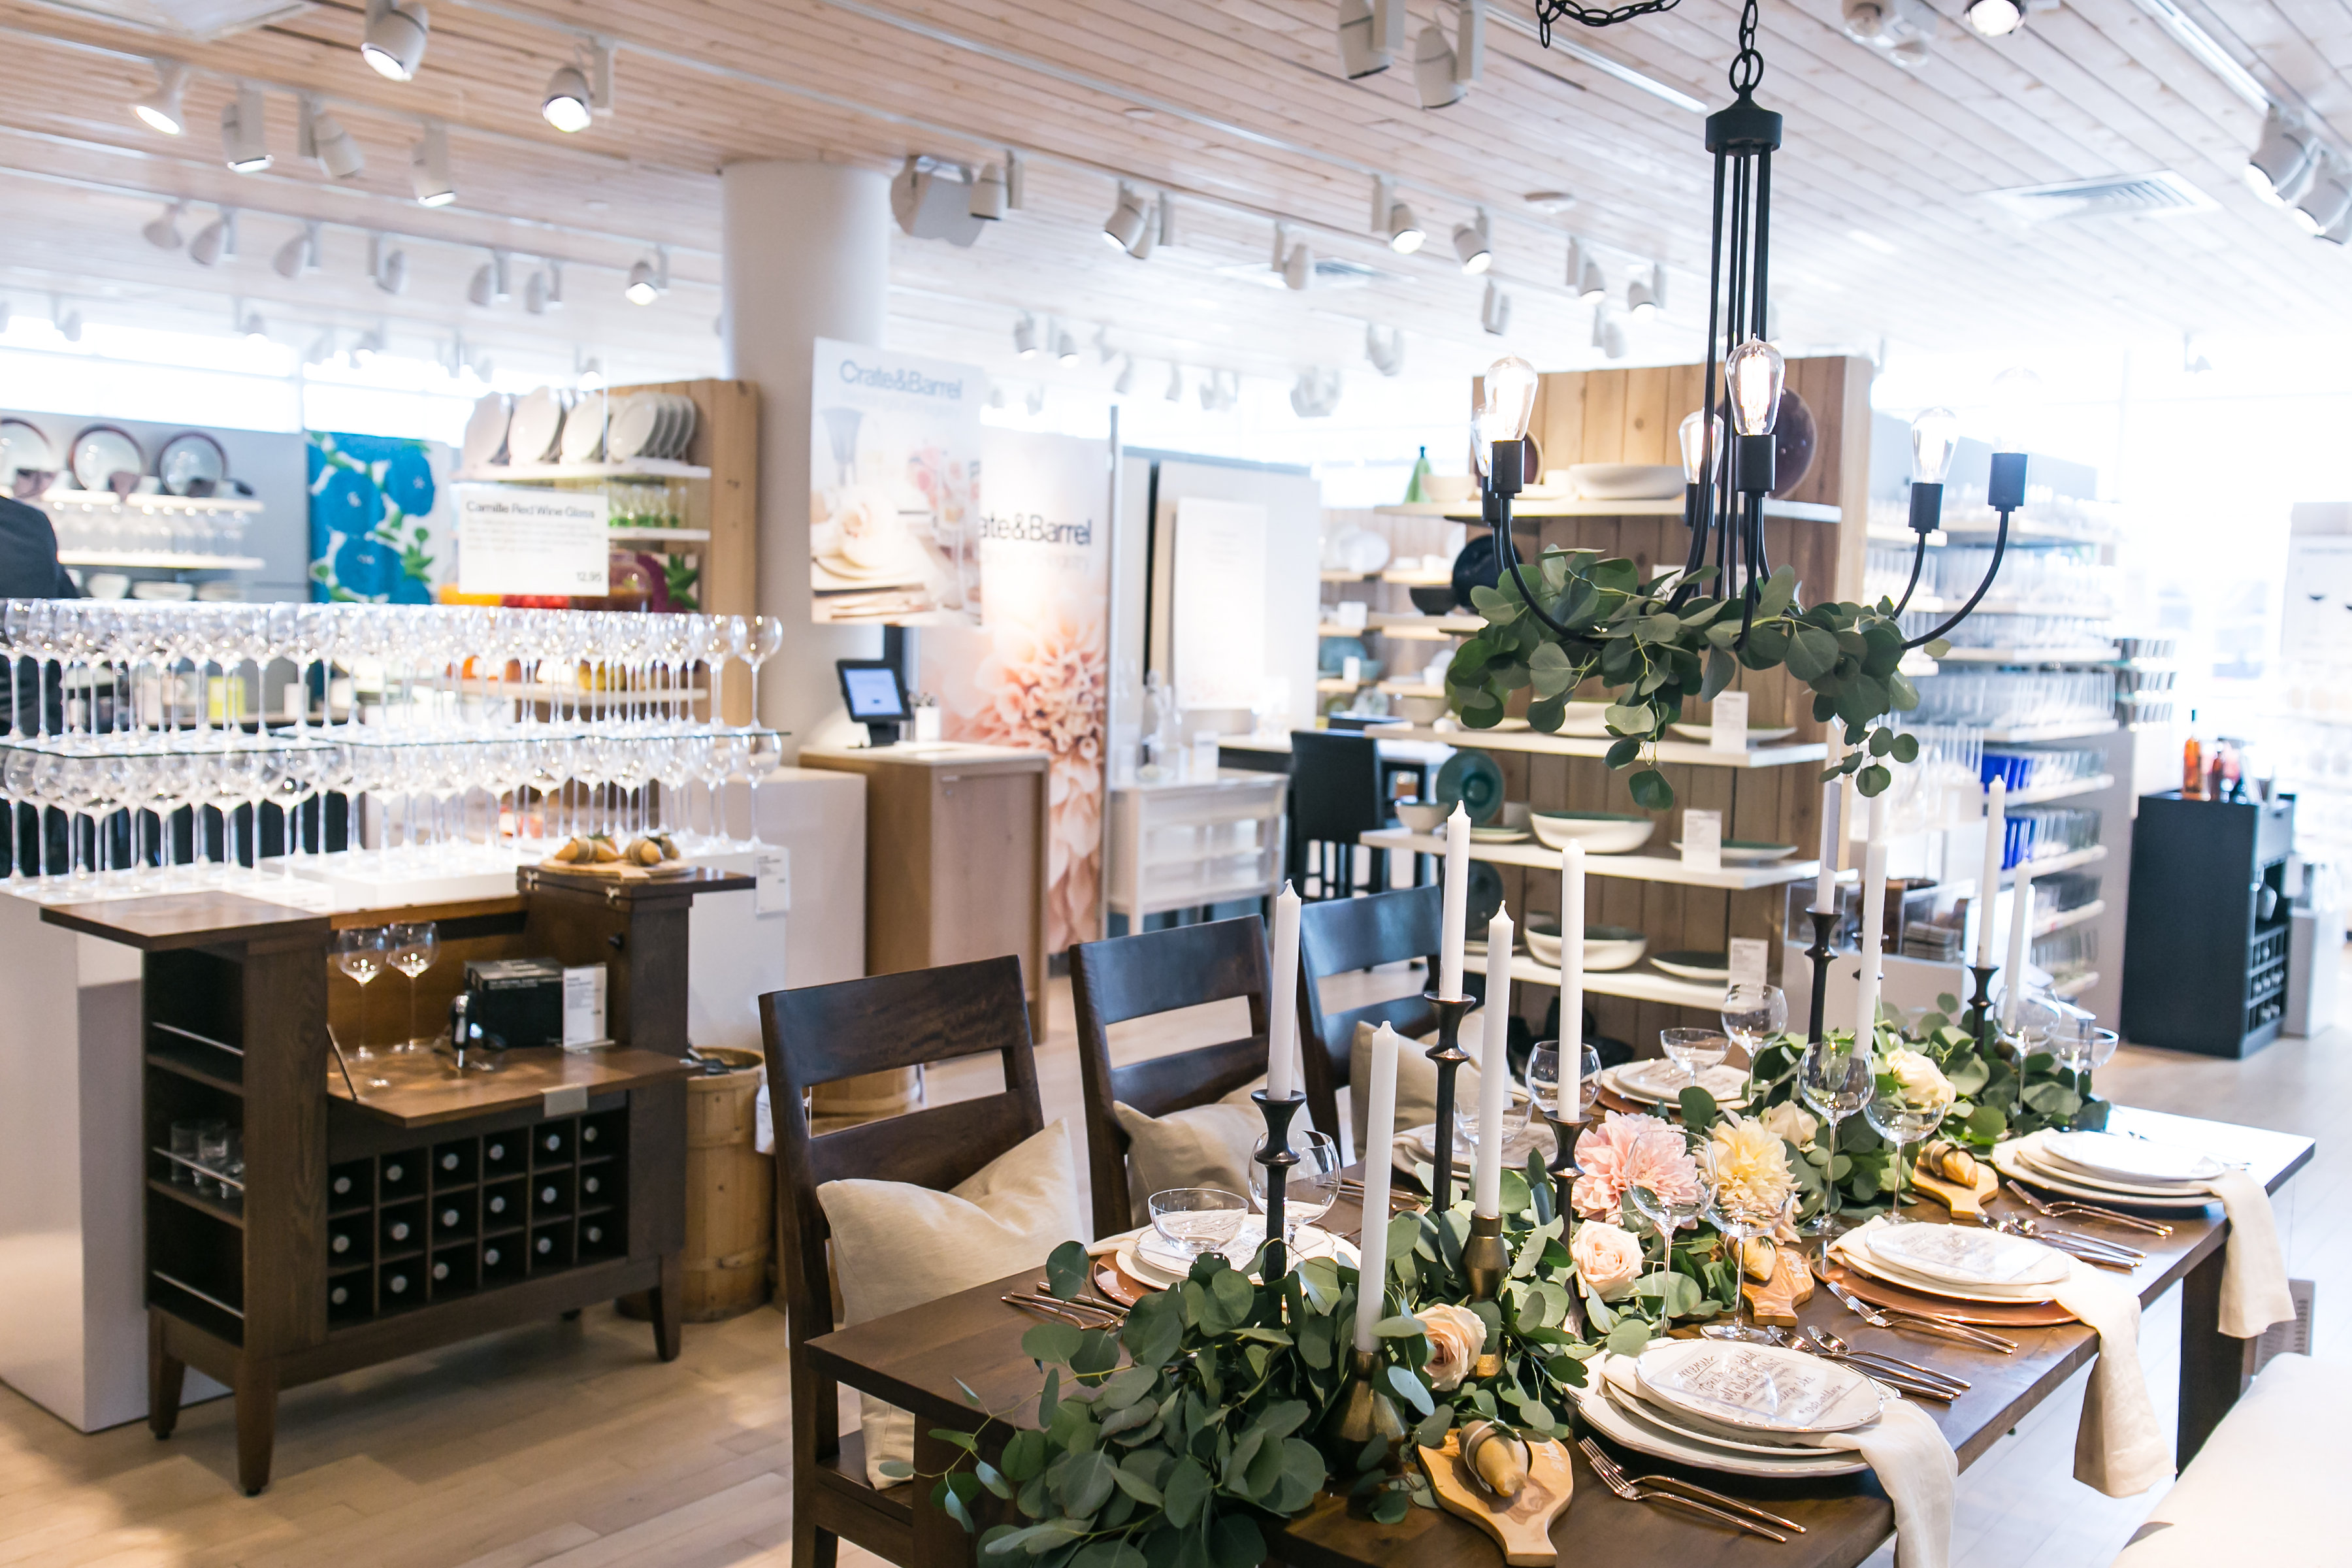 crate and barrel registry event shannon gail weddings on crate and barrel id=35512